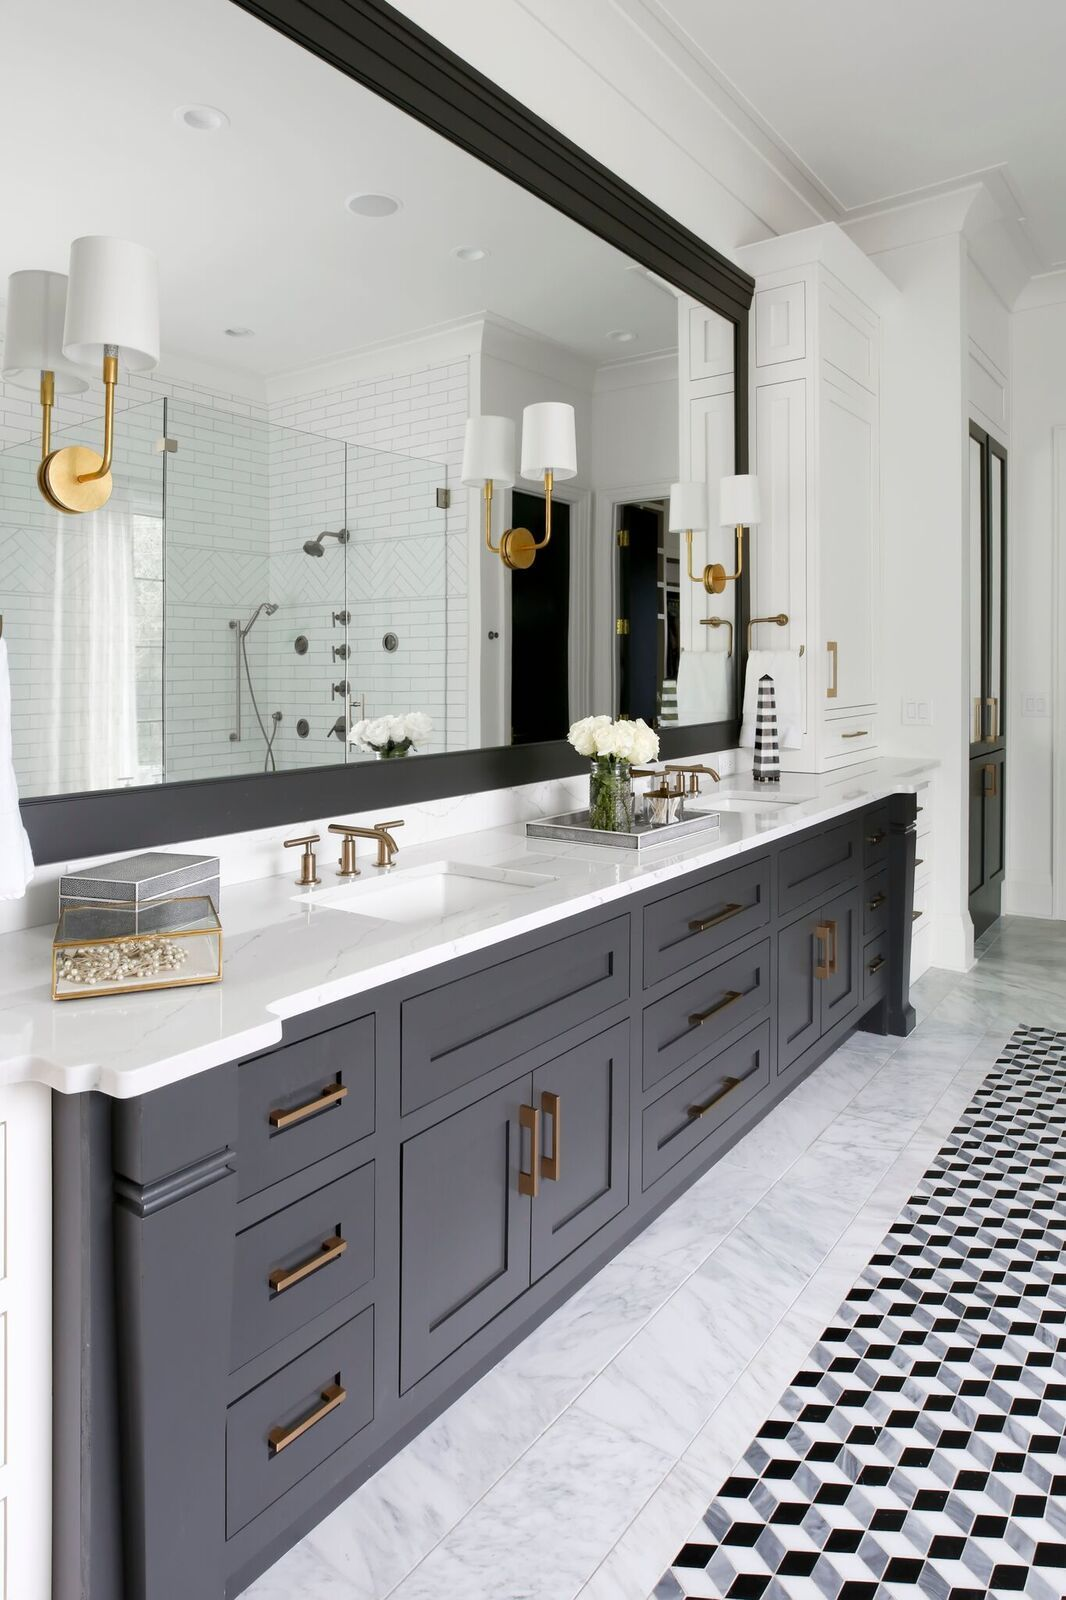 Custom Touches Abound in This Fabulous Family Home | Aesthetic Black ...